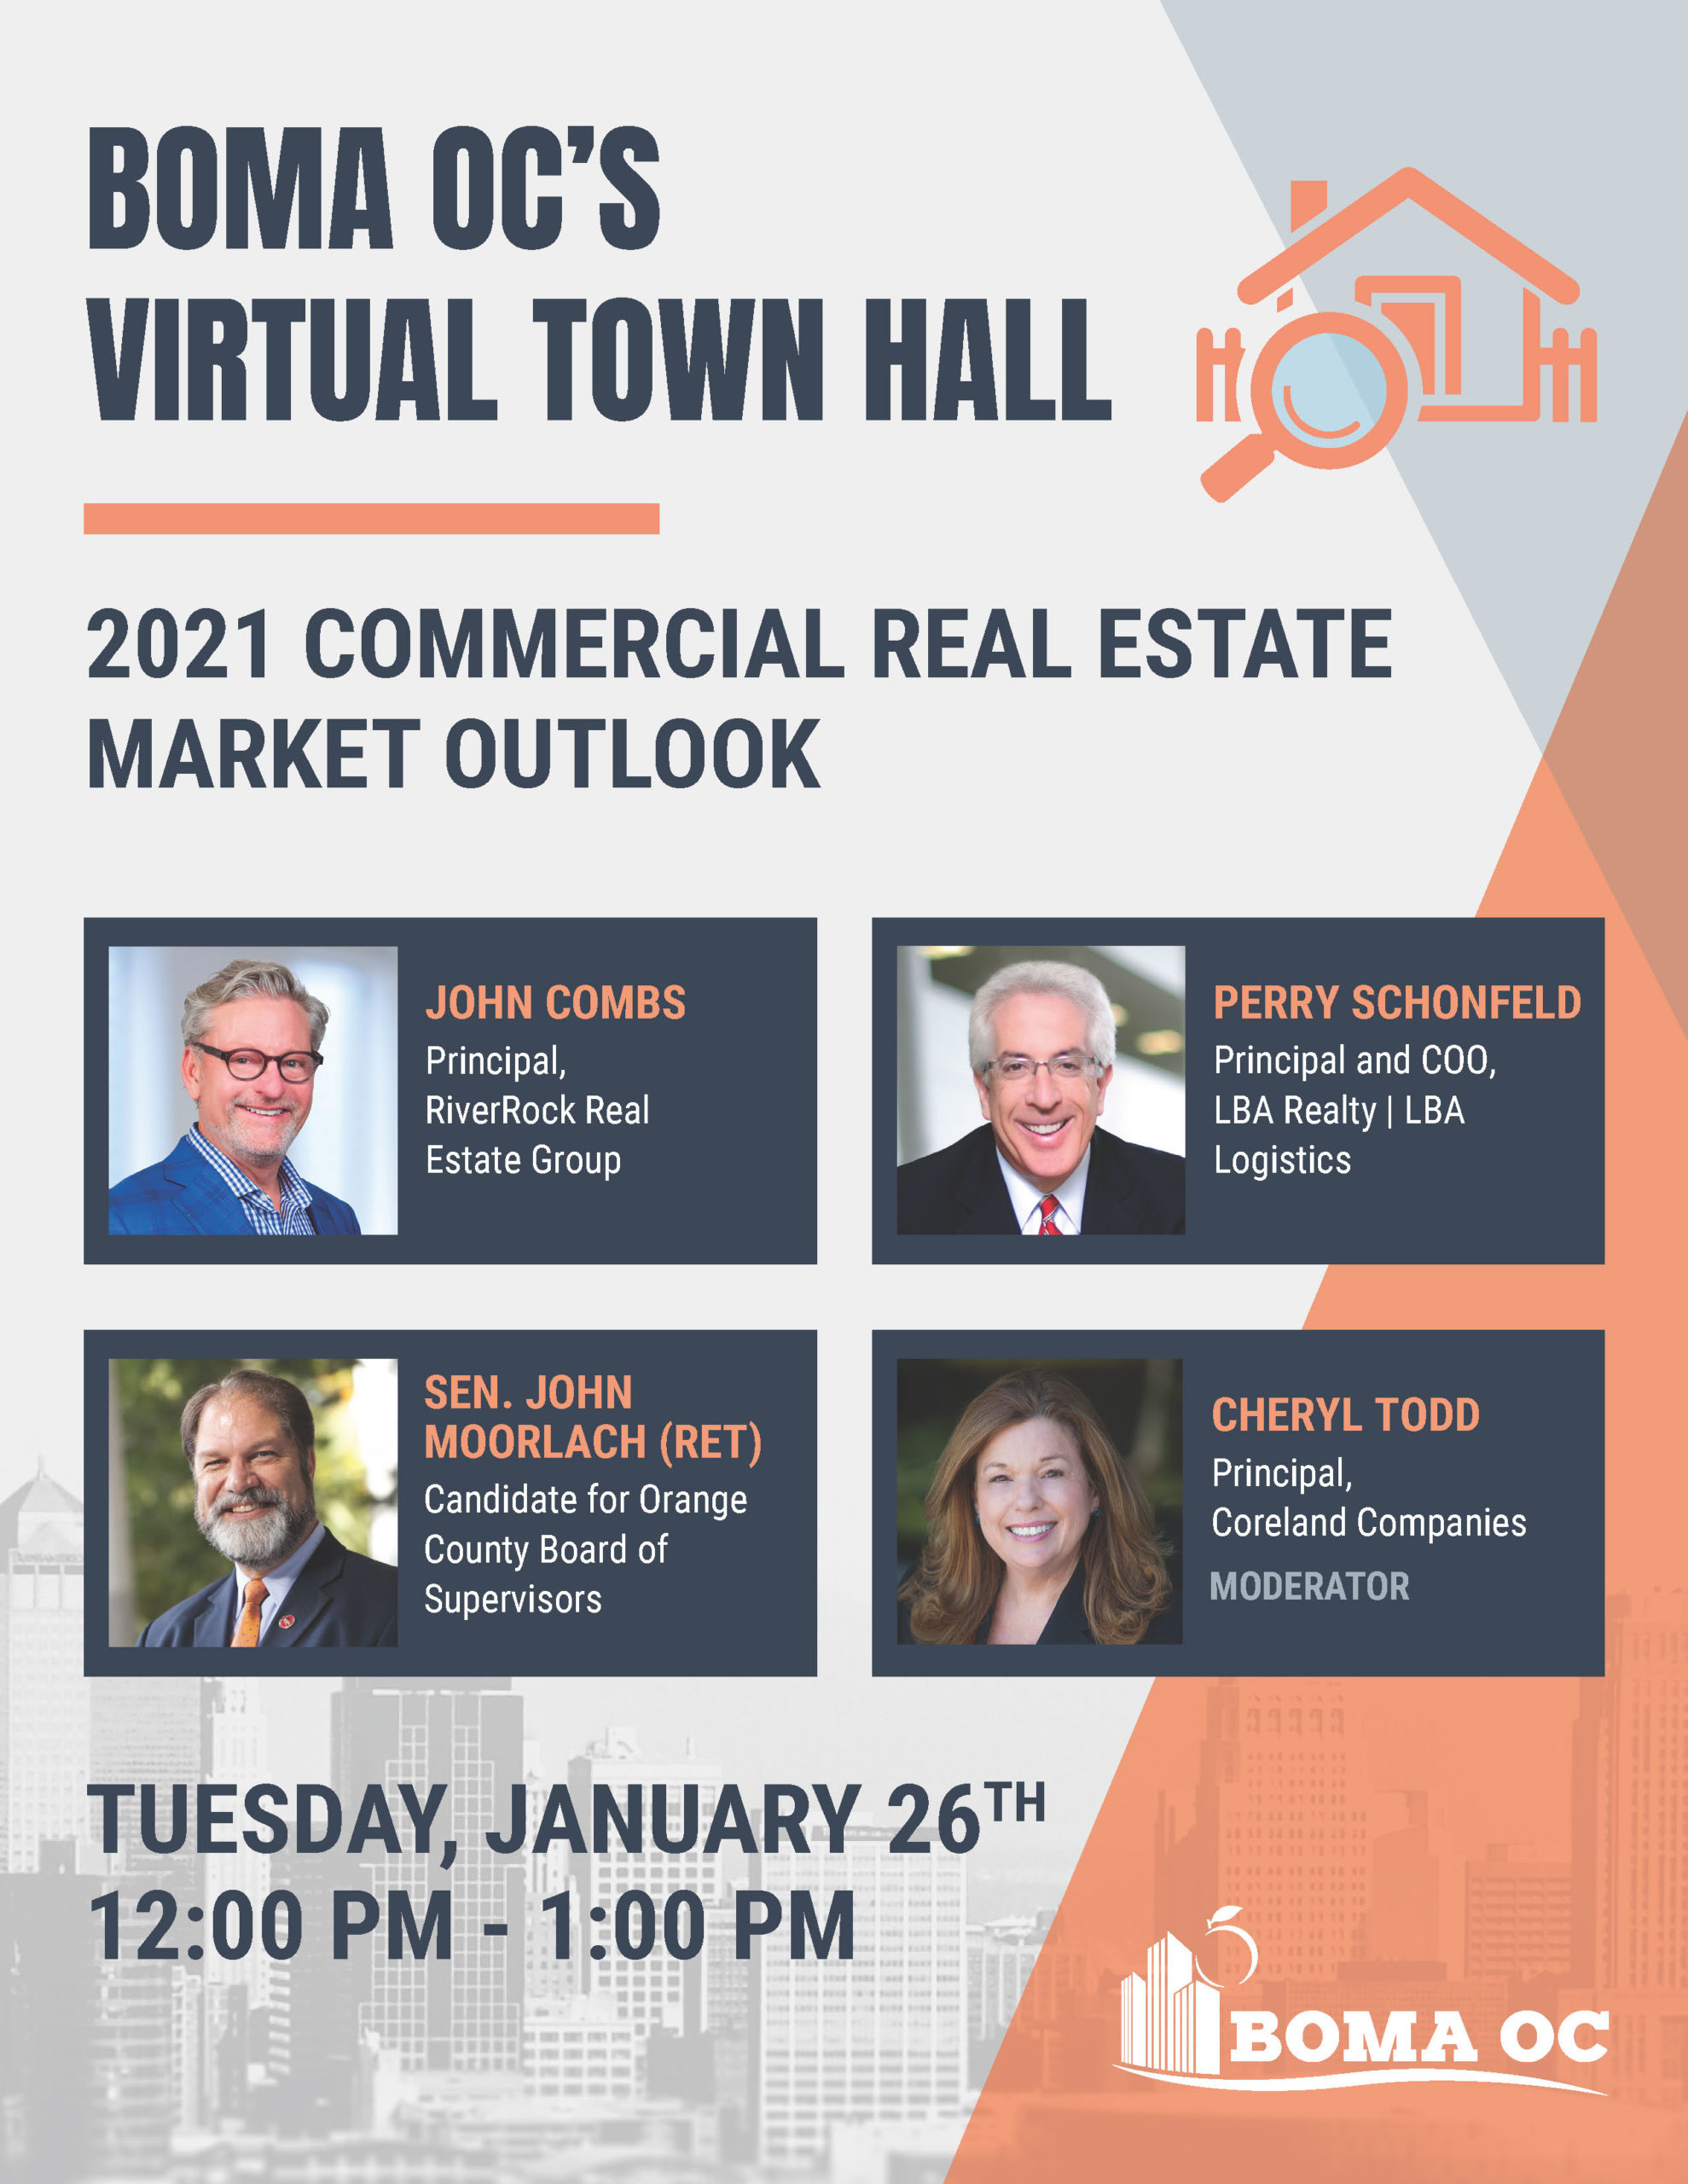 BOMA OC'S VIRTUAL TOWN HALL: 2021 COMMERCIAL REAL ESTATE MARKET OUTLOOK